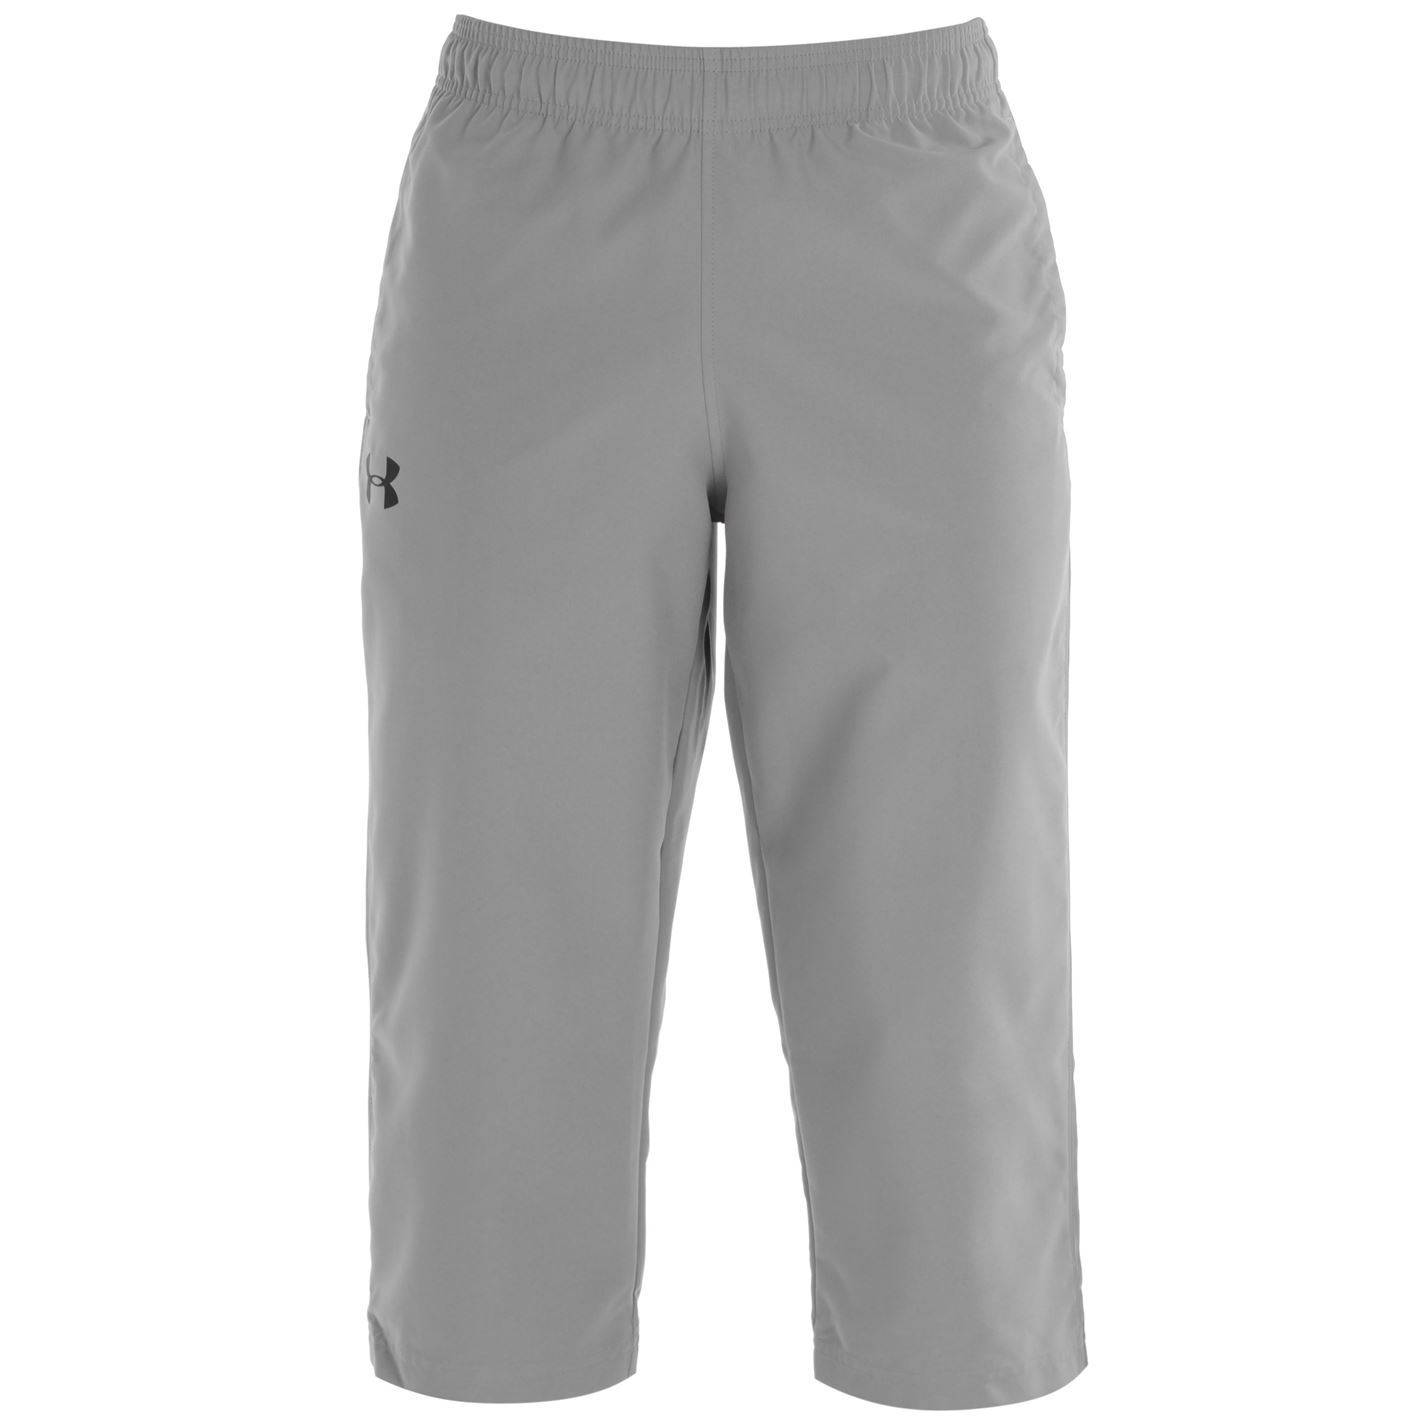 2903e4aa607 ... Shorts Trousers Bottoms. Under Armour Core Three Quarter Pants Mens